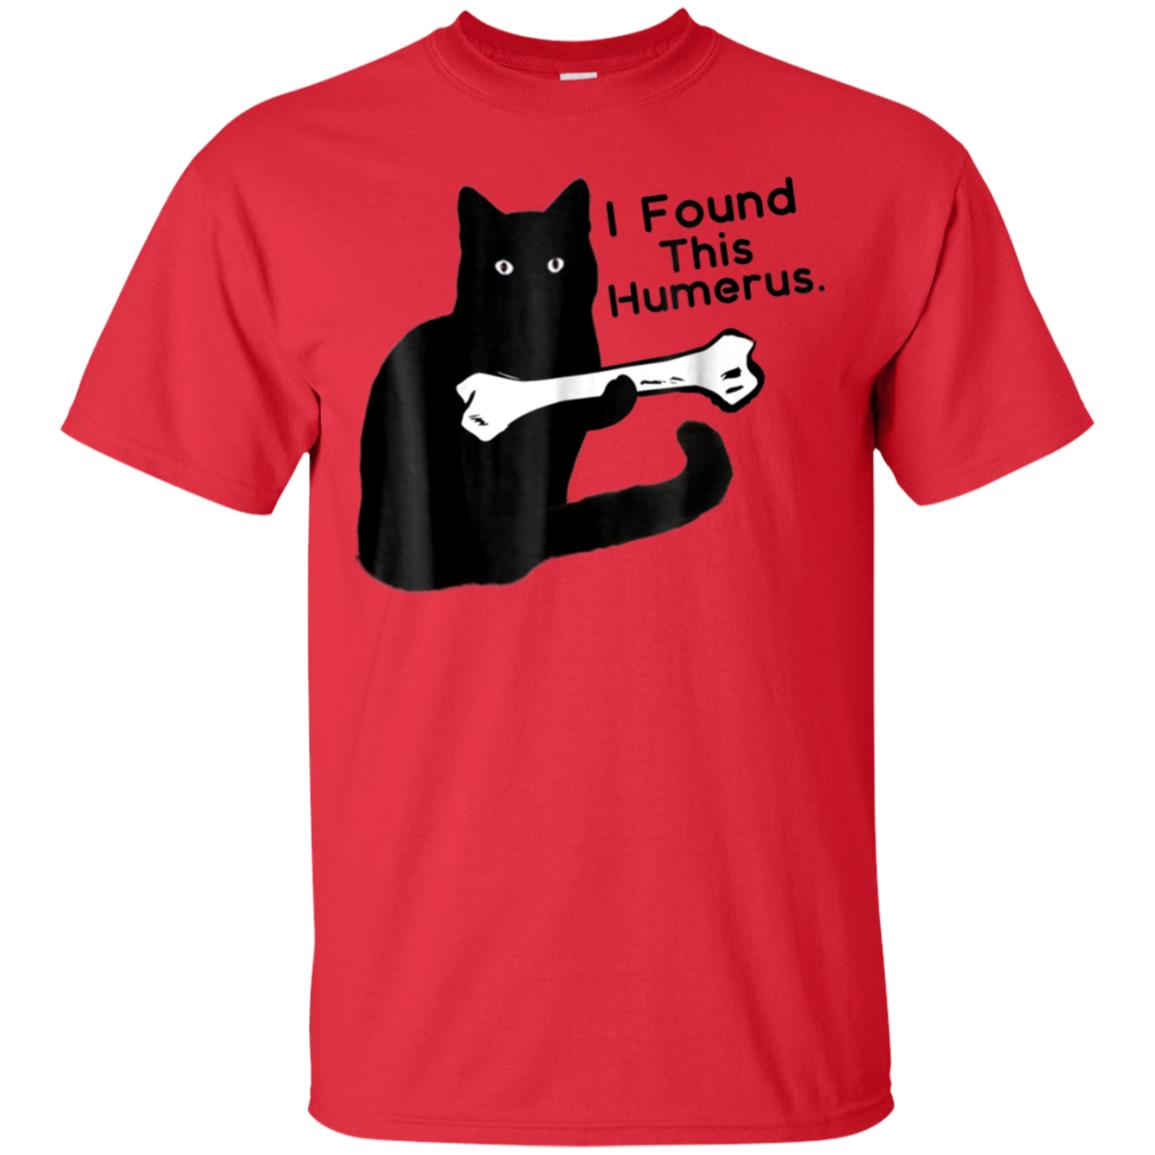 c4bb4537d Awesome funny t shirt i found this humerus cats humourous pun ...